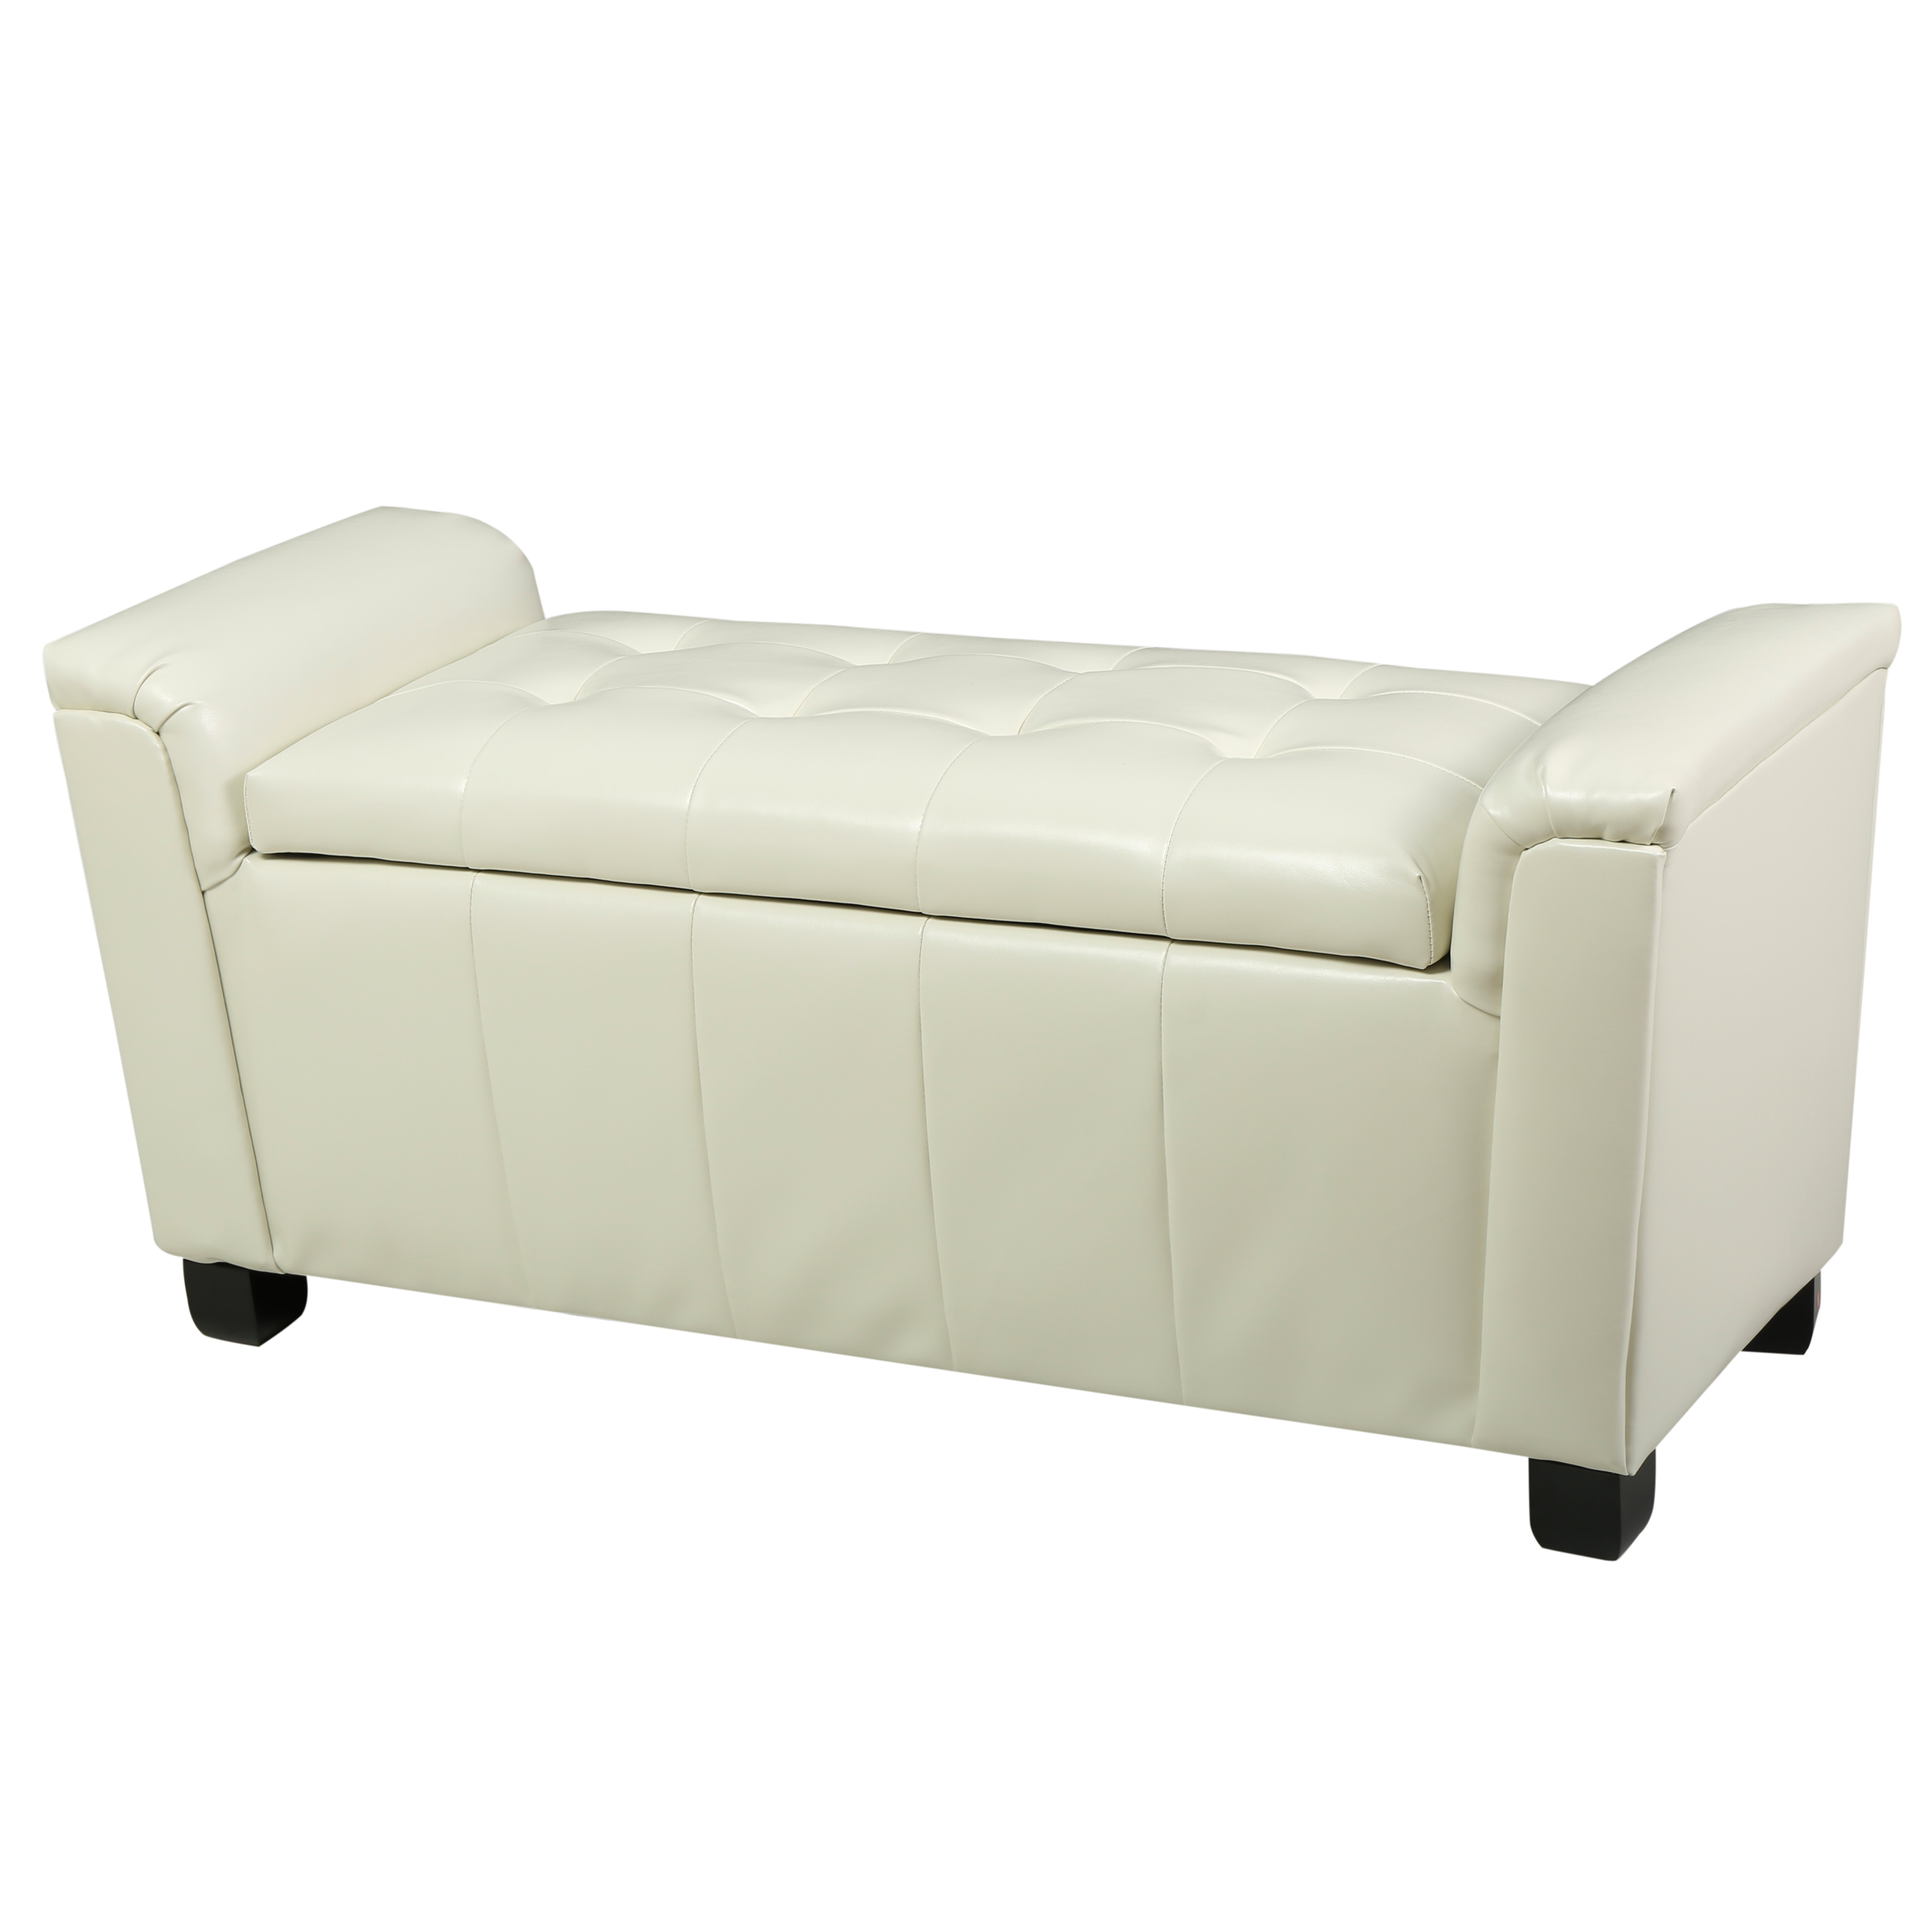 James Tufted Leather Armed Storage Ottoman Bench, Ivory